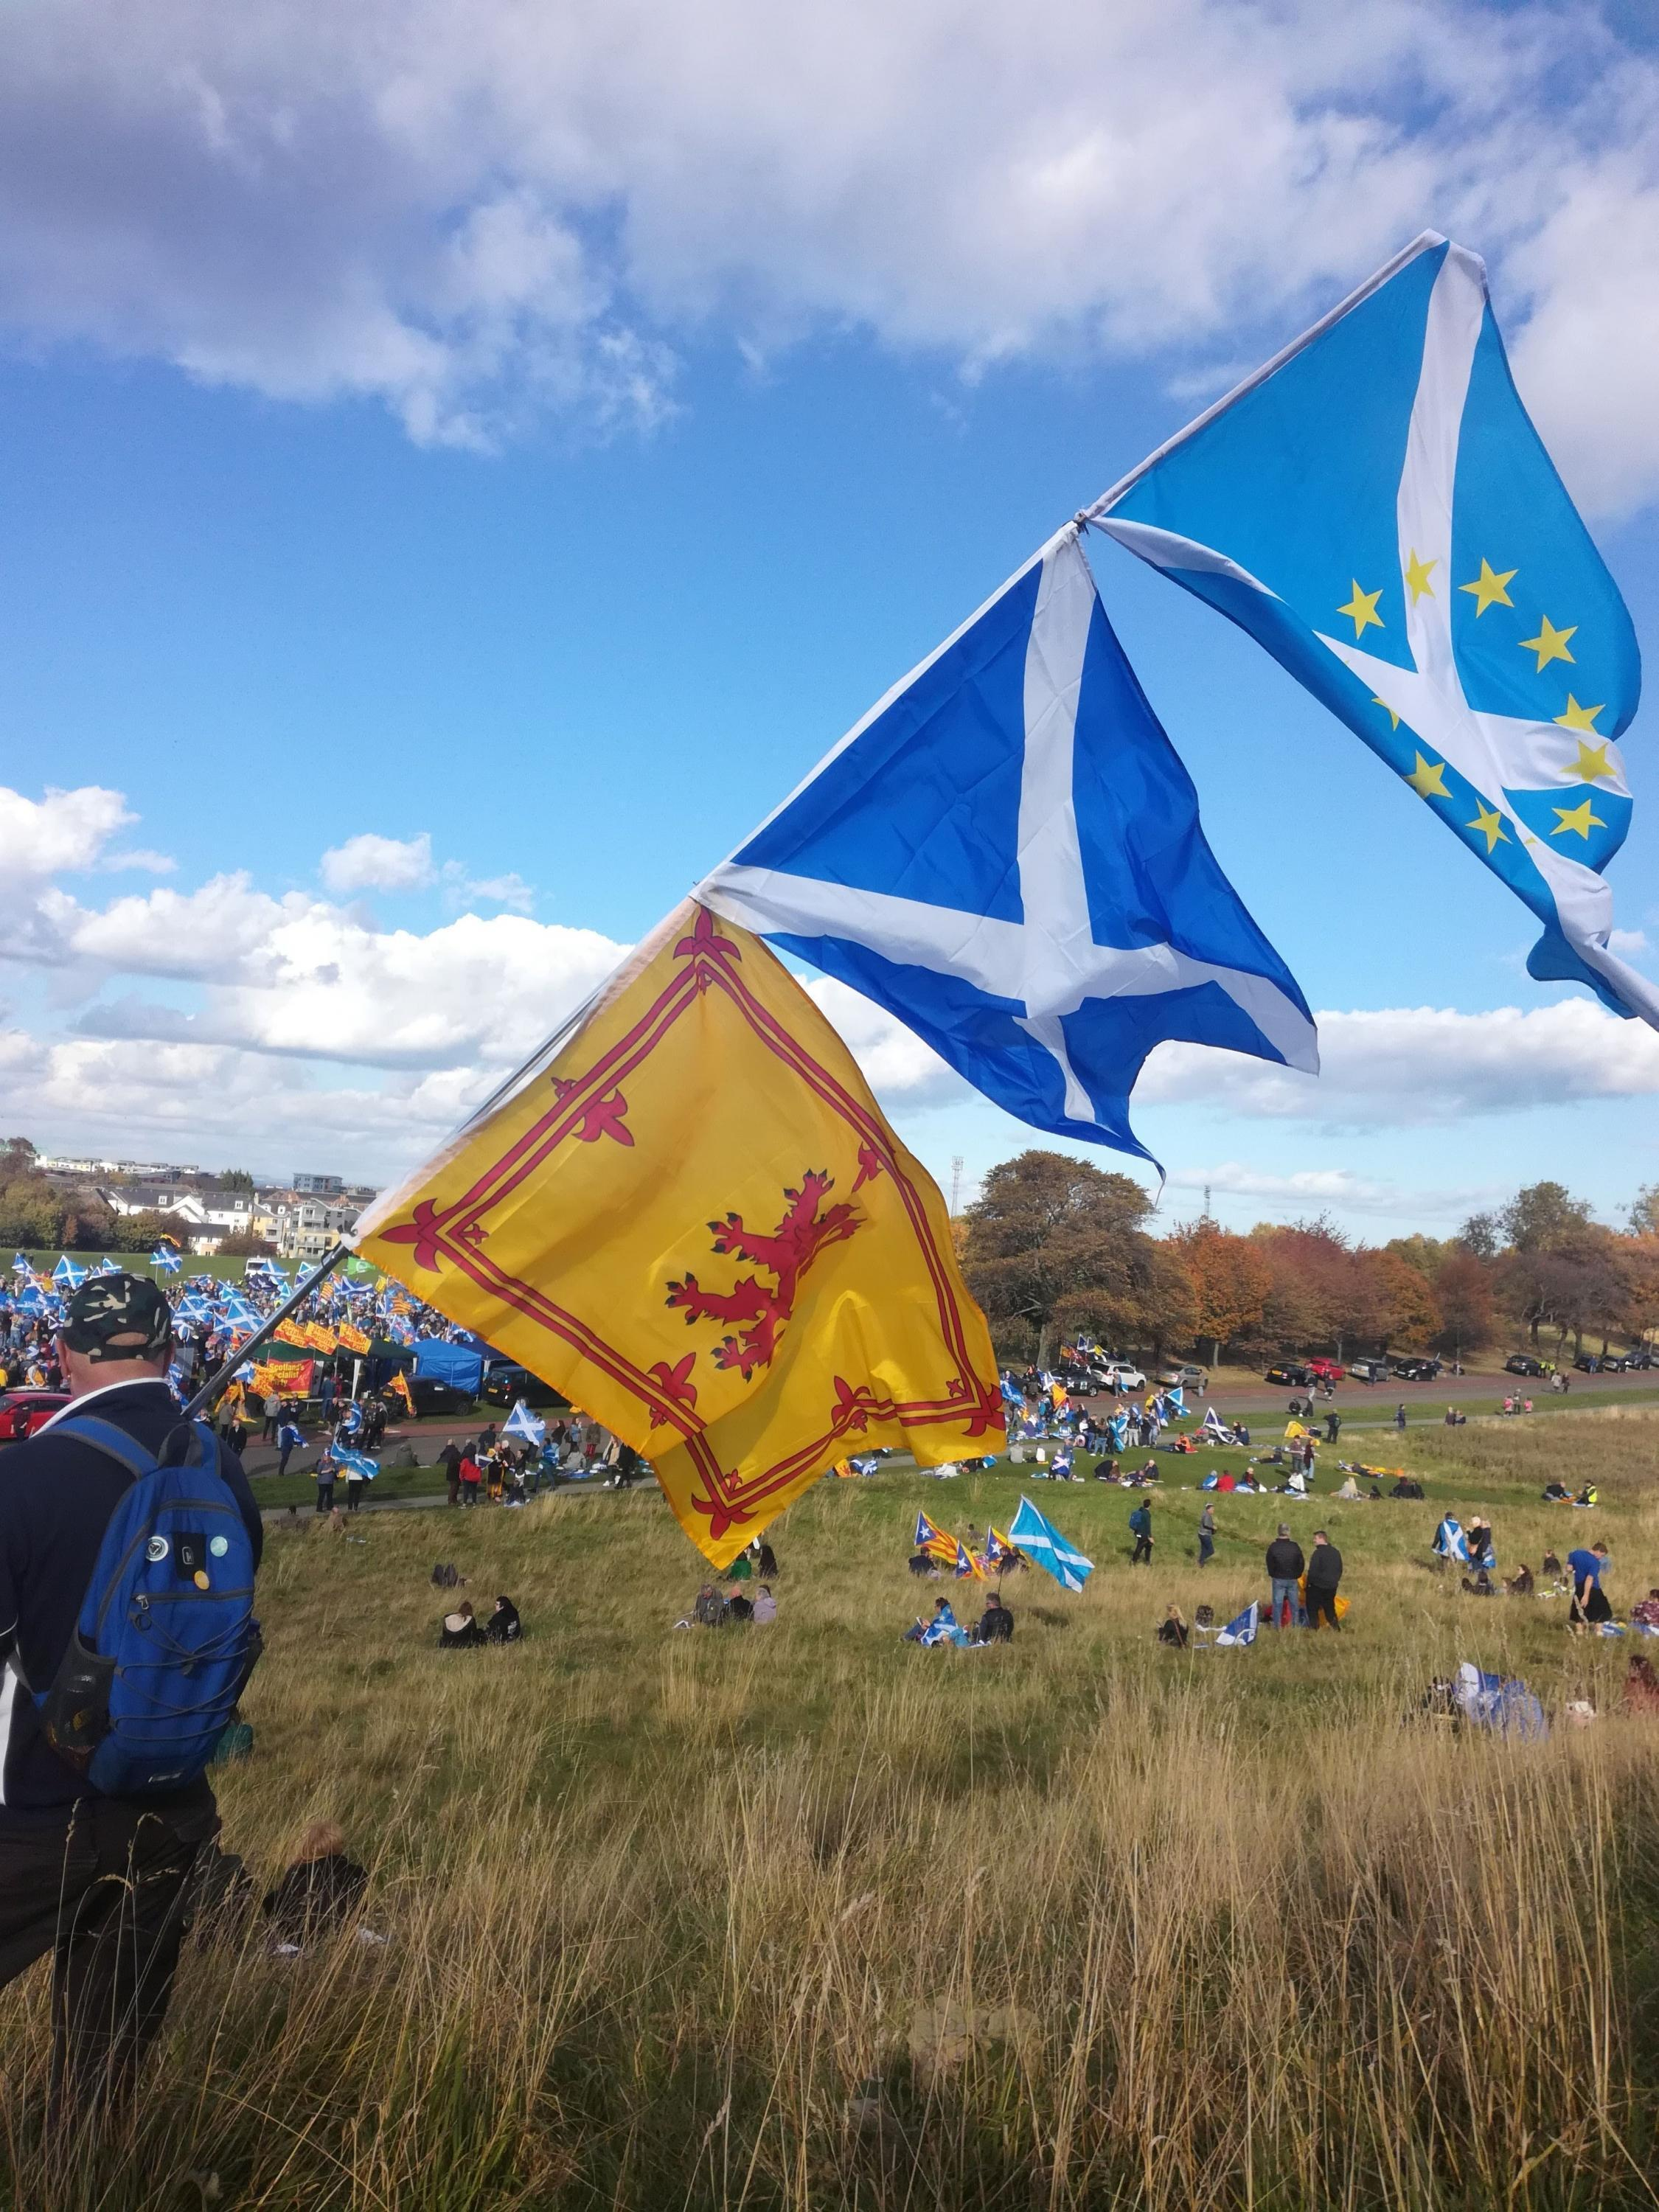 A man carries a pole holding flags of Scotland and the European Union